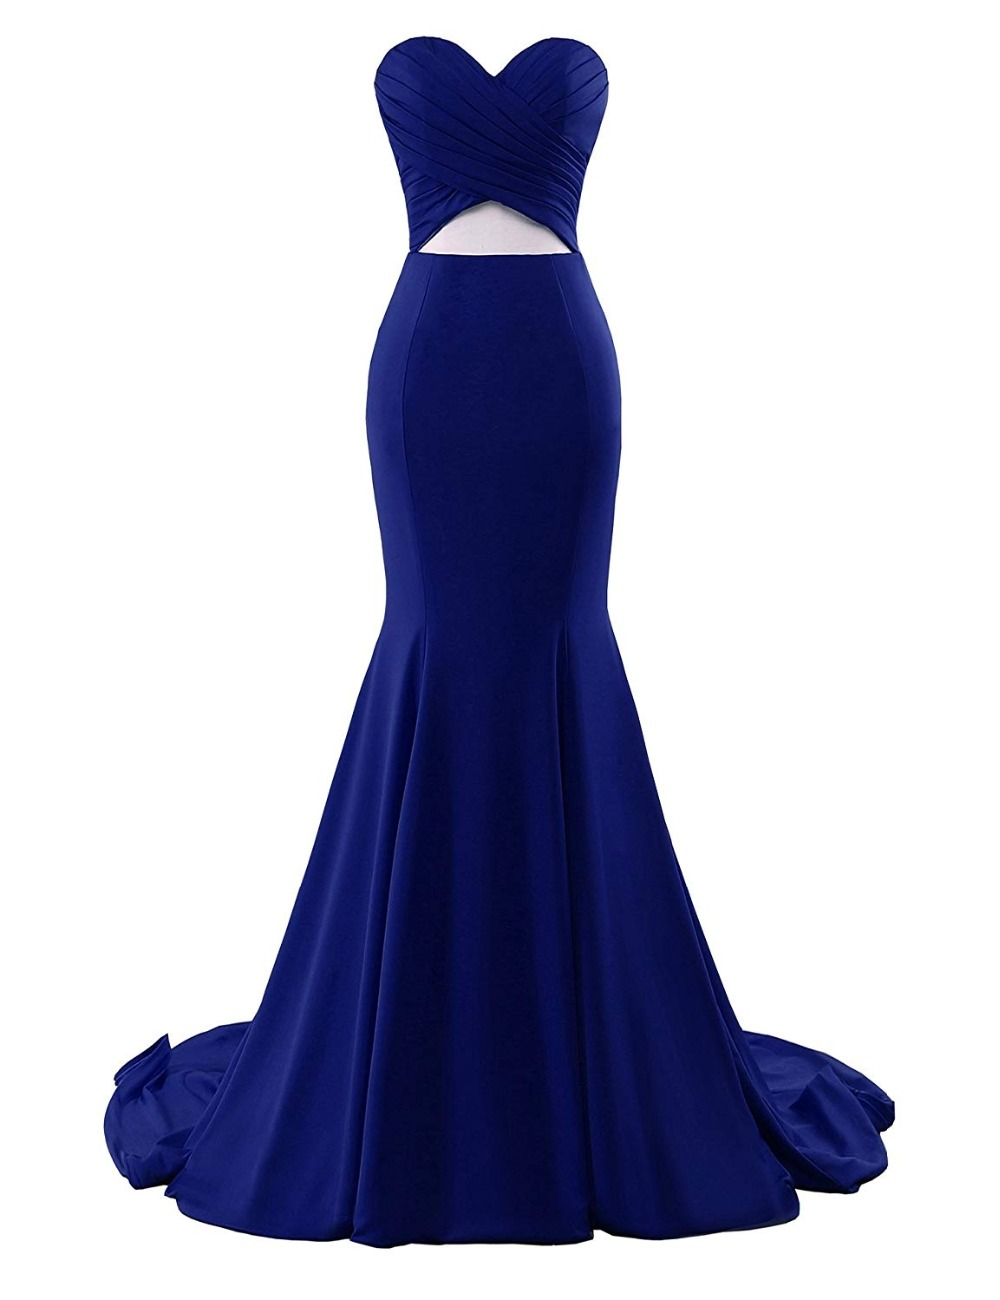 JaneVini Arabic Red Mermaid Party Dress 2018 Sweetheart Long Cut Out Bridesmaid Dresses Sexy Dubai Ladies Button Formal Gown - 6